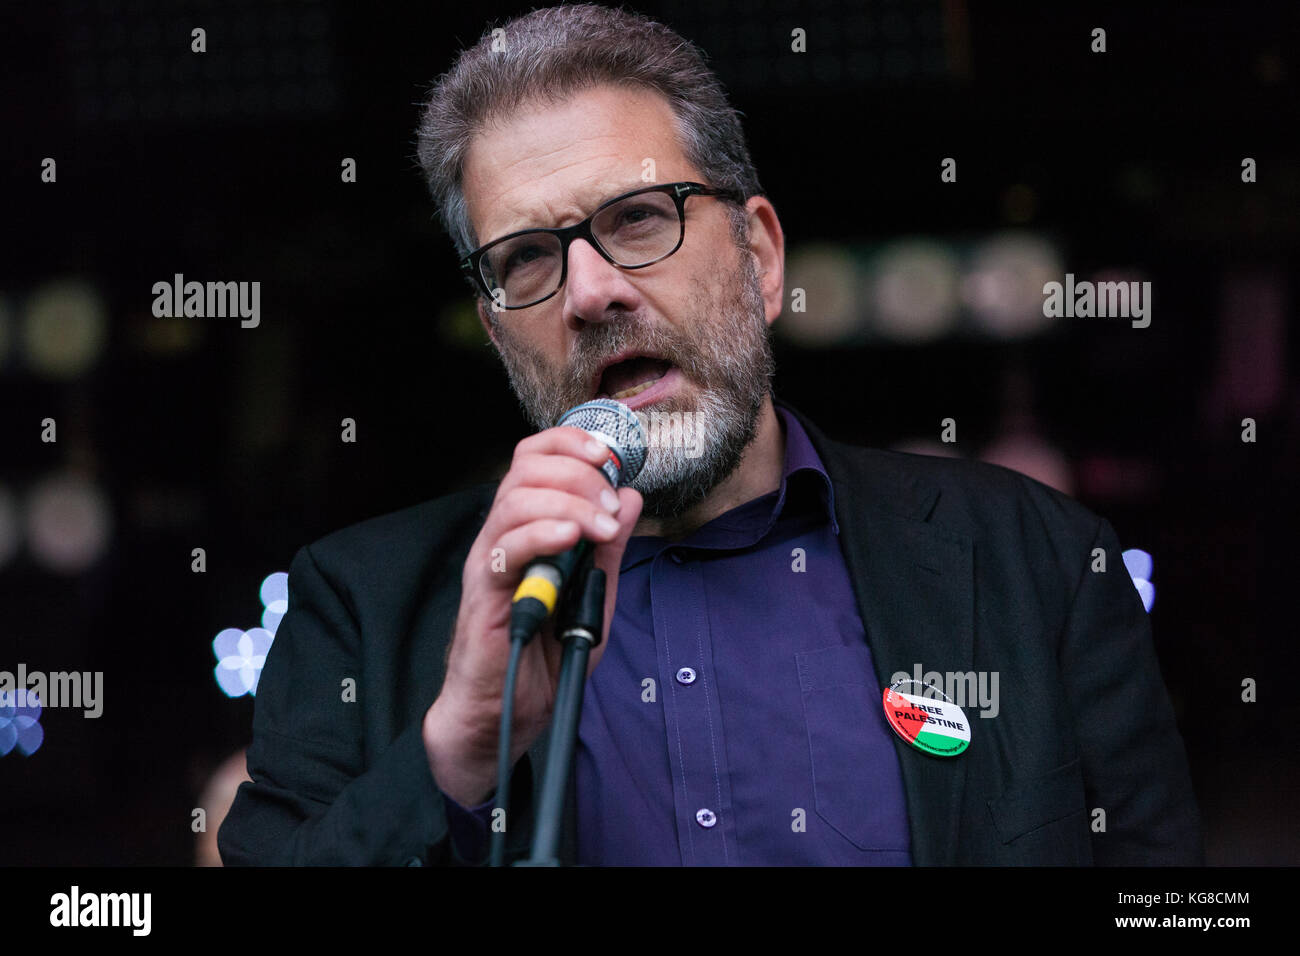 London, UK. 4th November, 2017. Ben Jamal, Director of Palestine Solidarity Campaign, addresses campaigners for - Stock Image